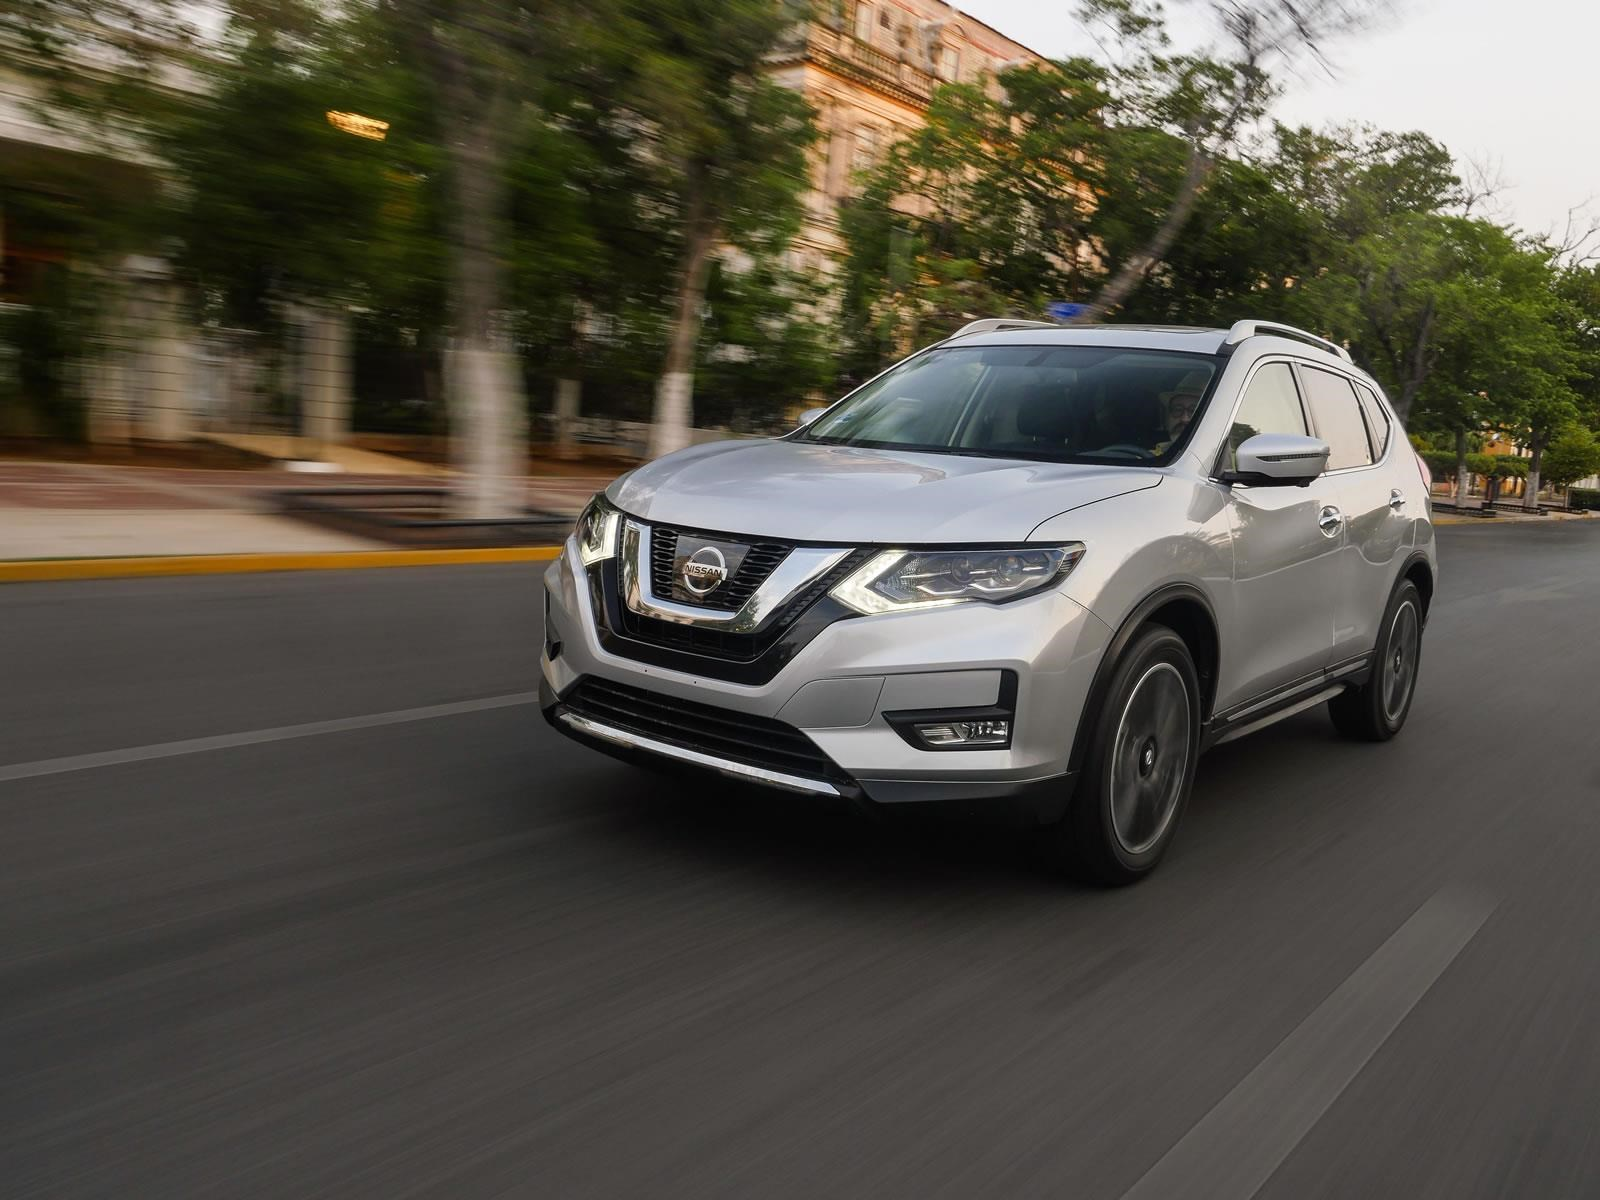 Catalogo Nissan X Trail 2019 | Nissan & Dodge Cars Review